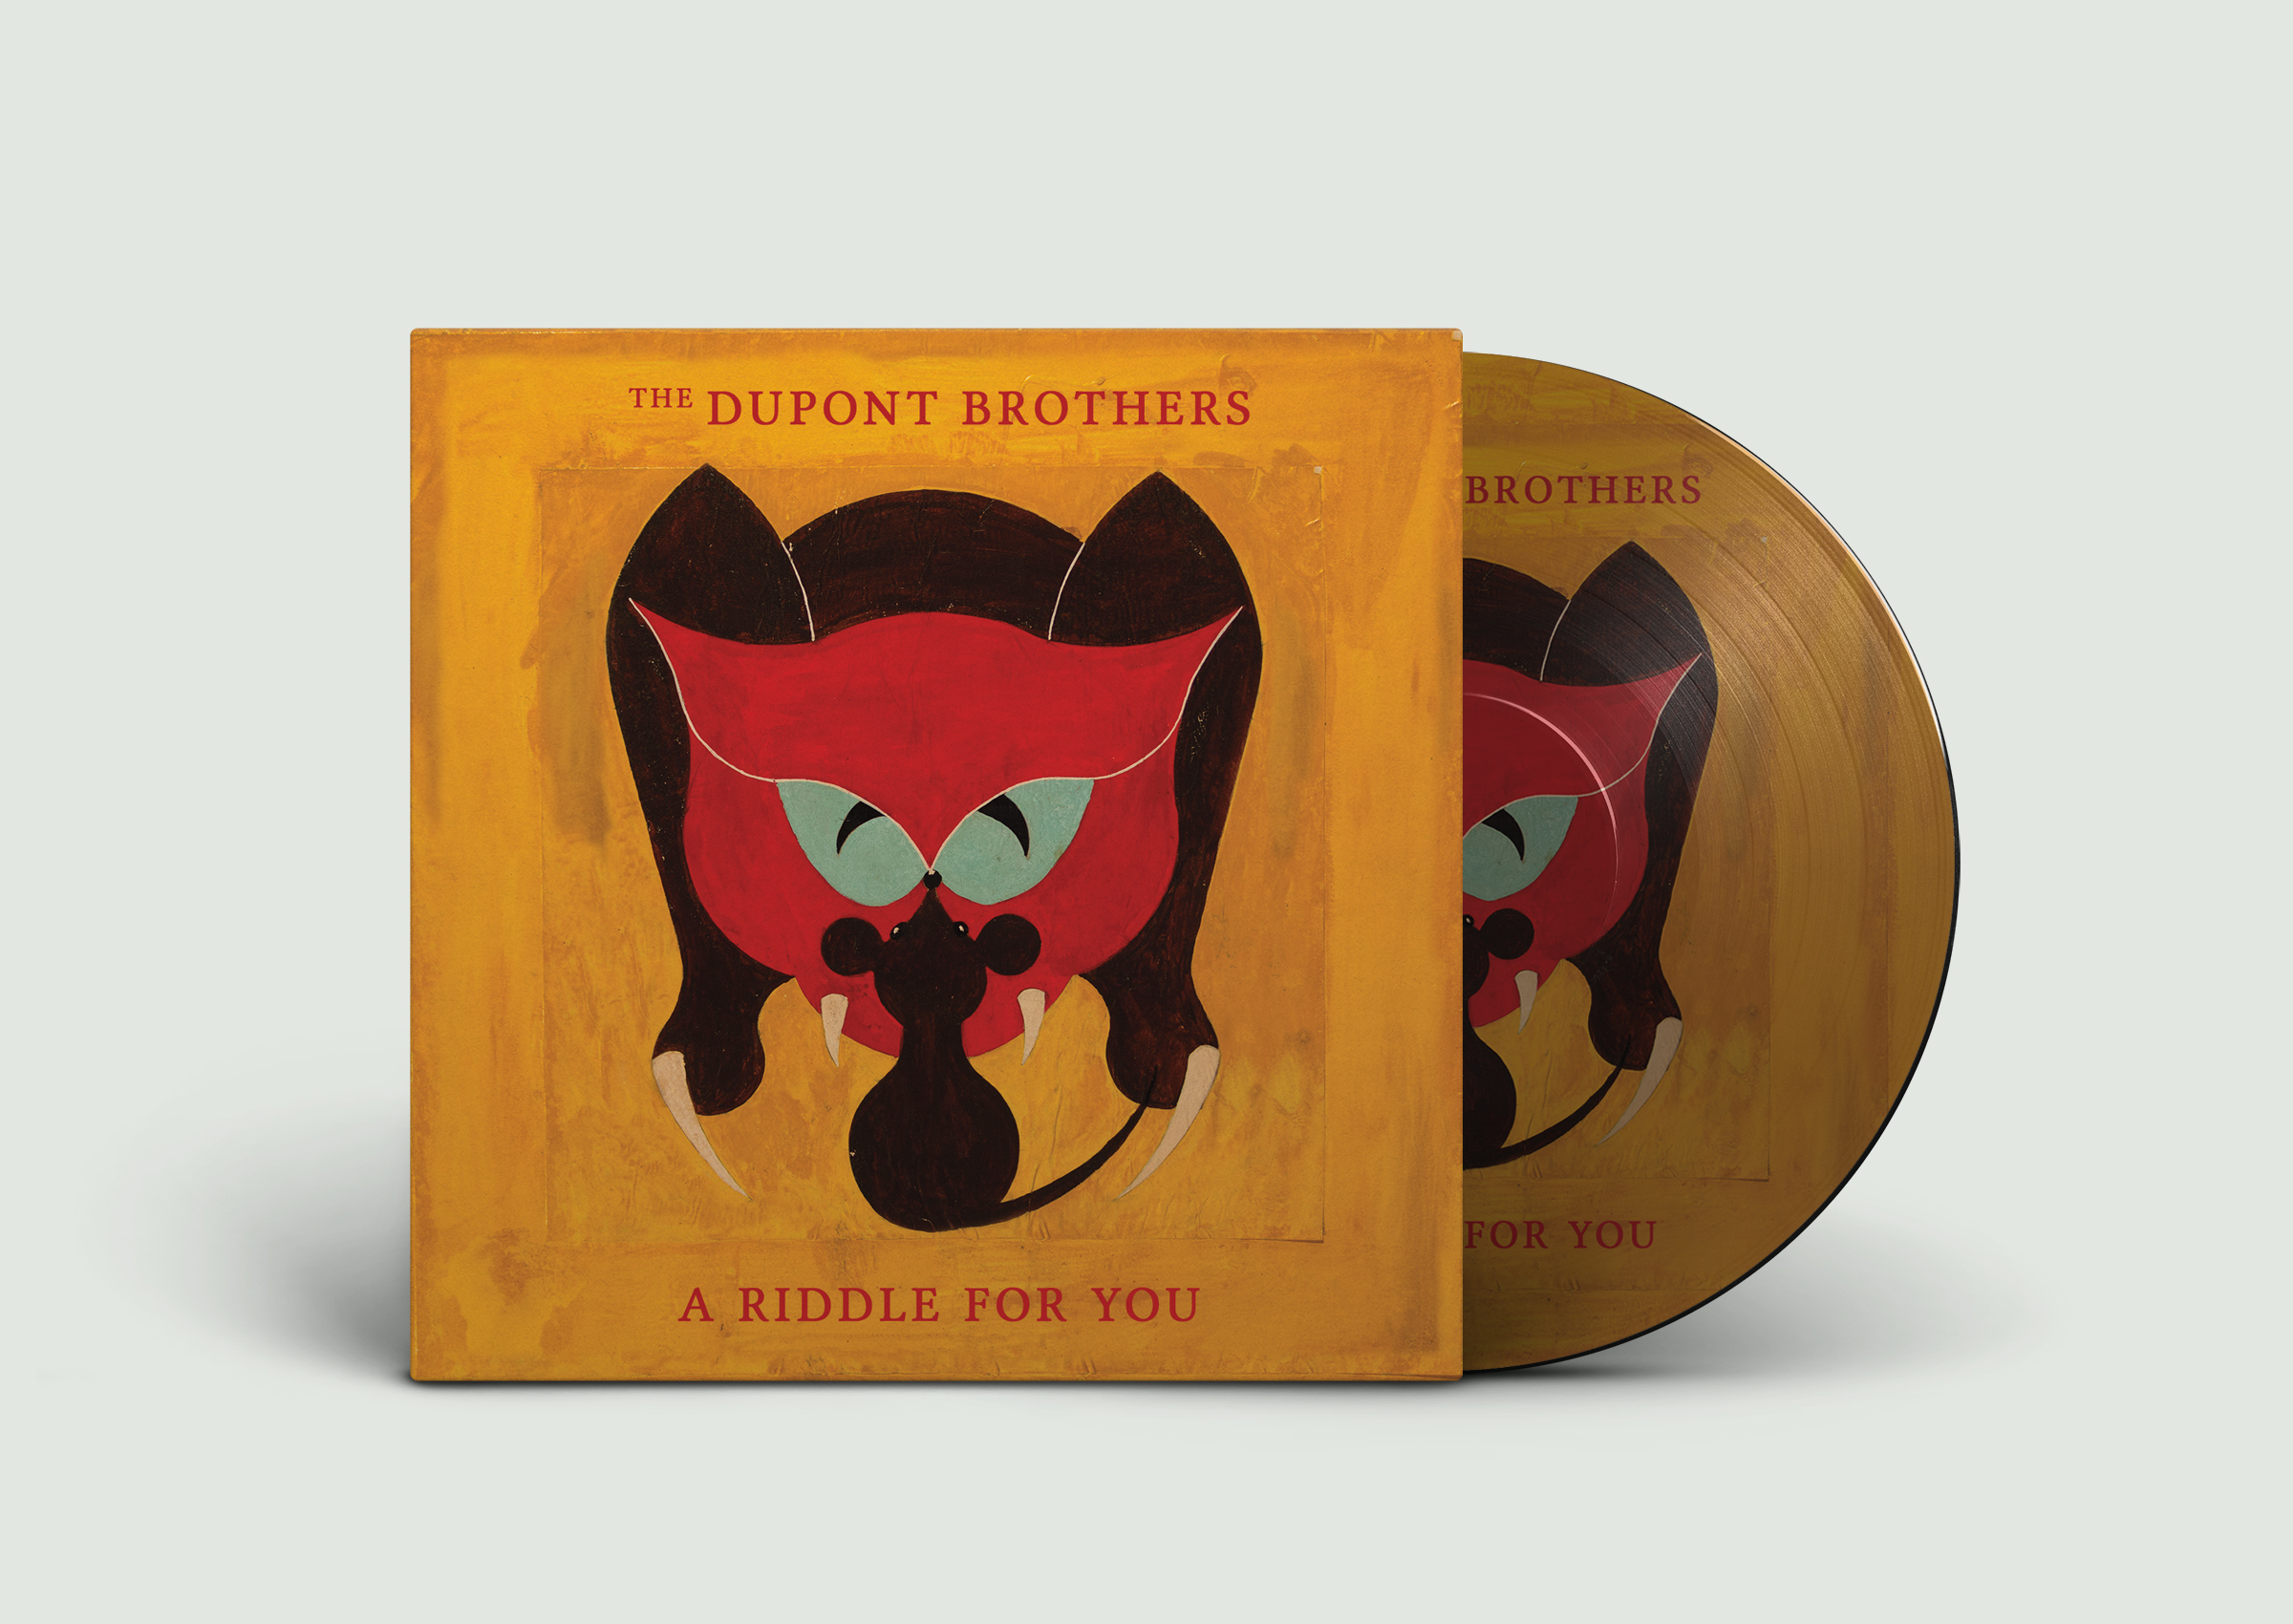 Dupont Brothers vinyl record packaging